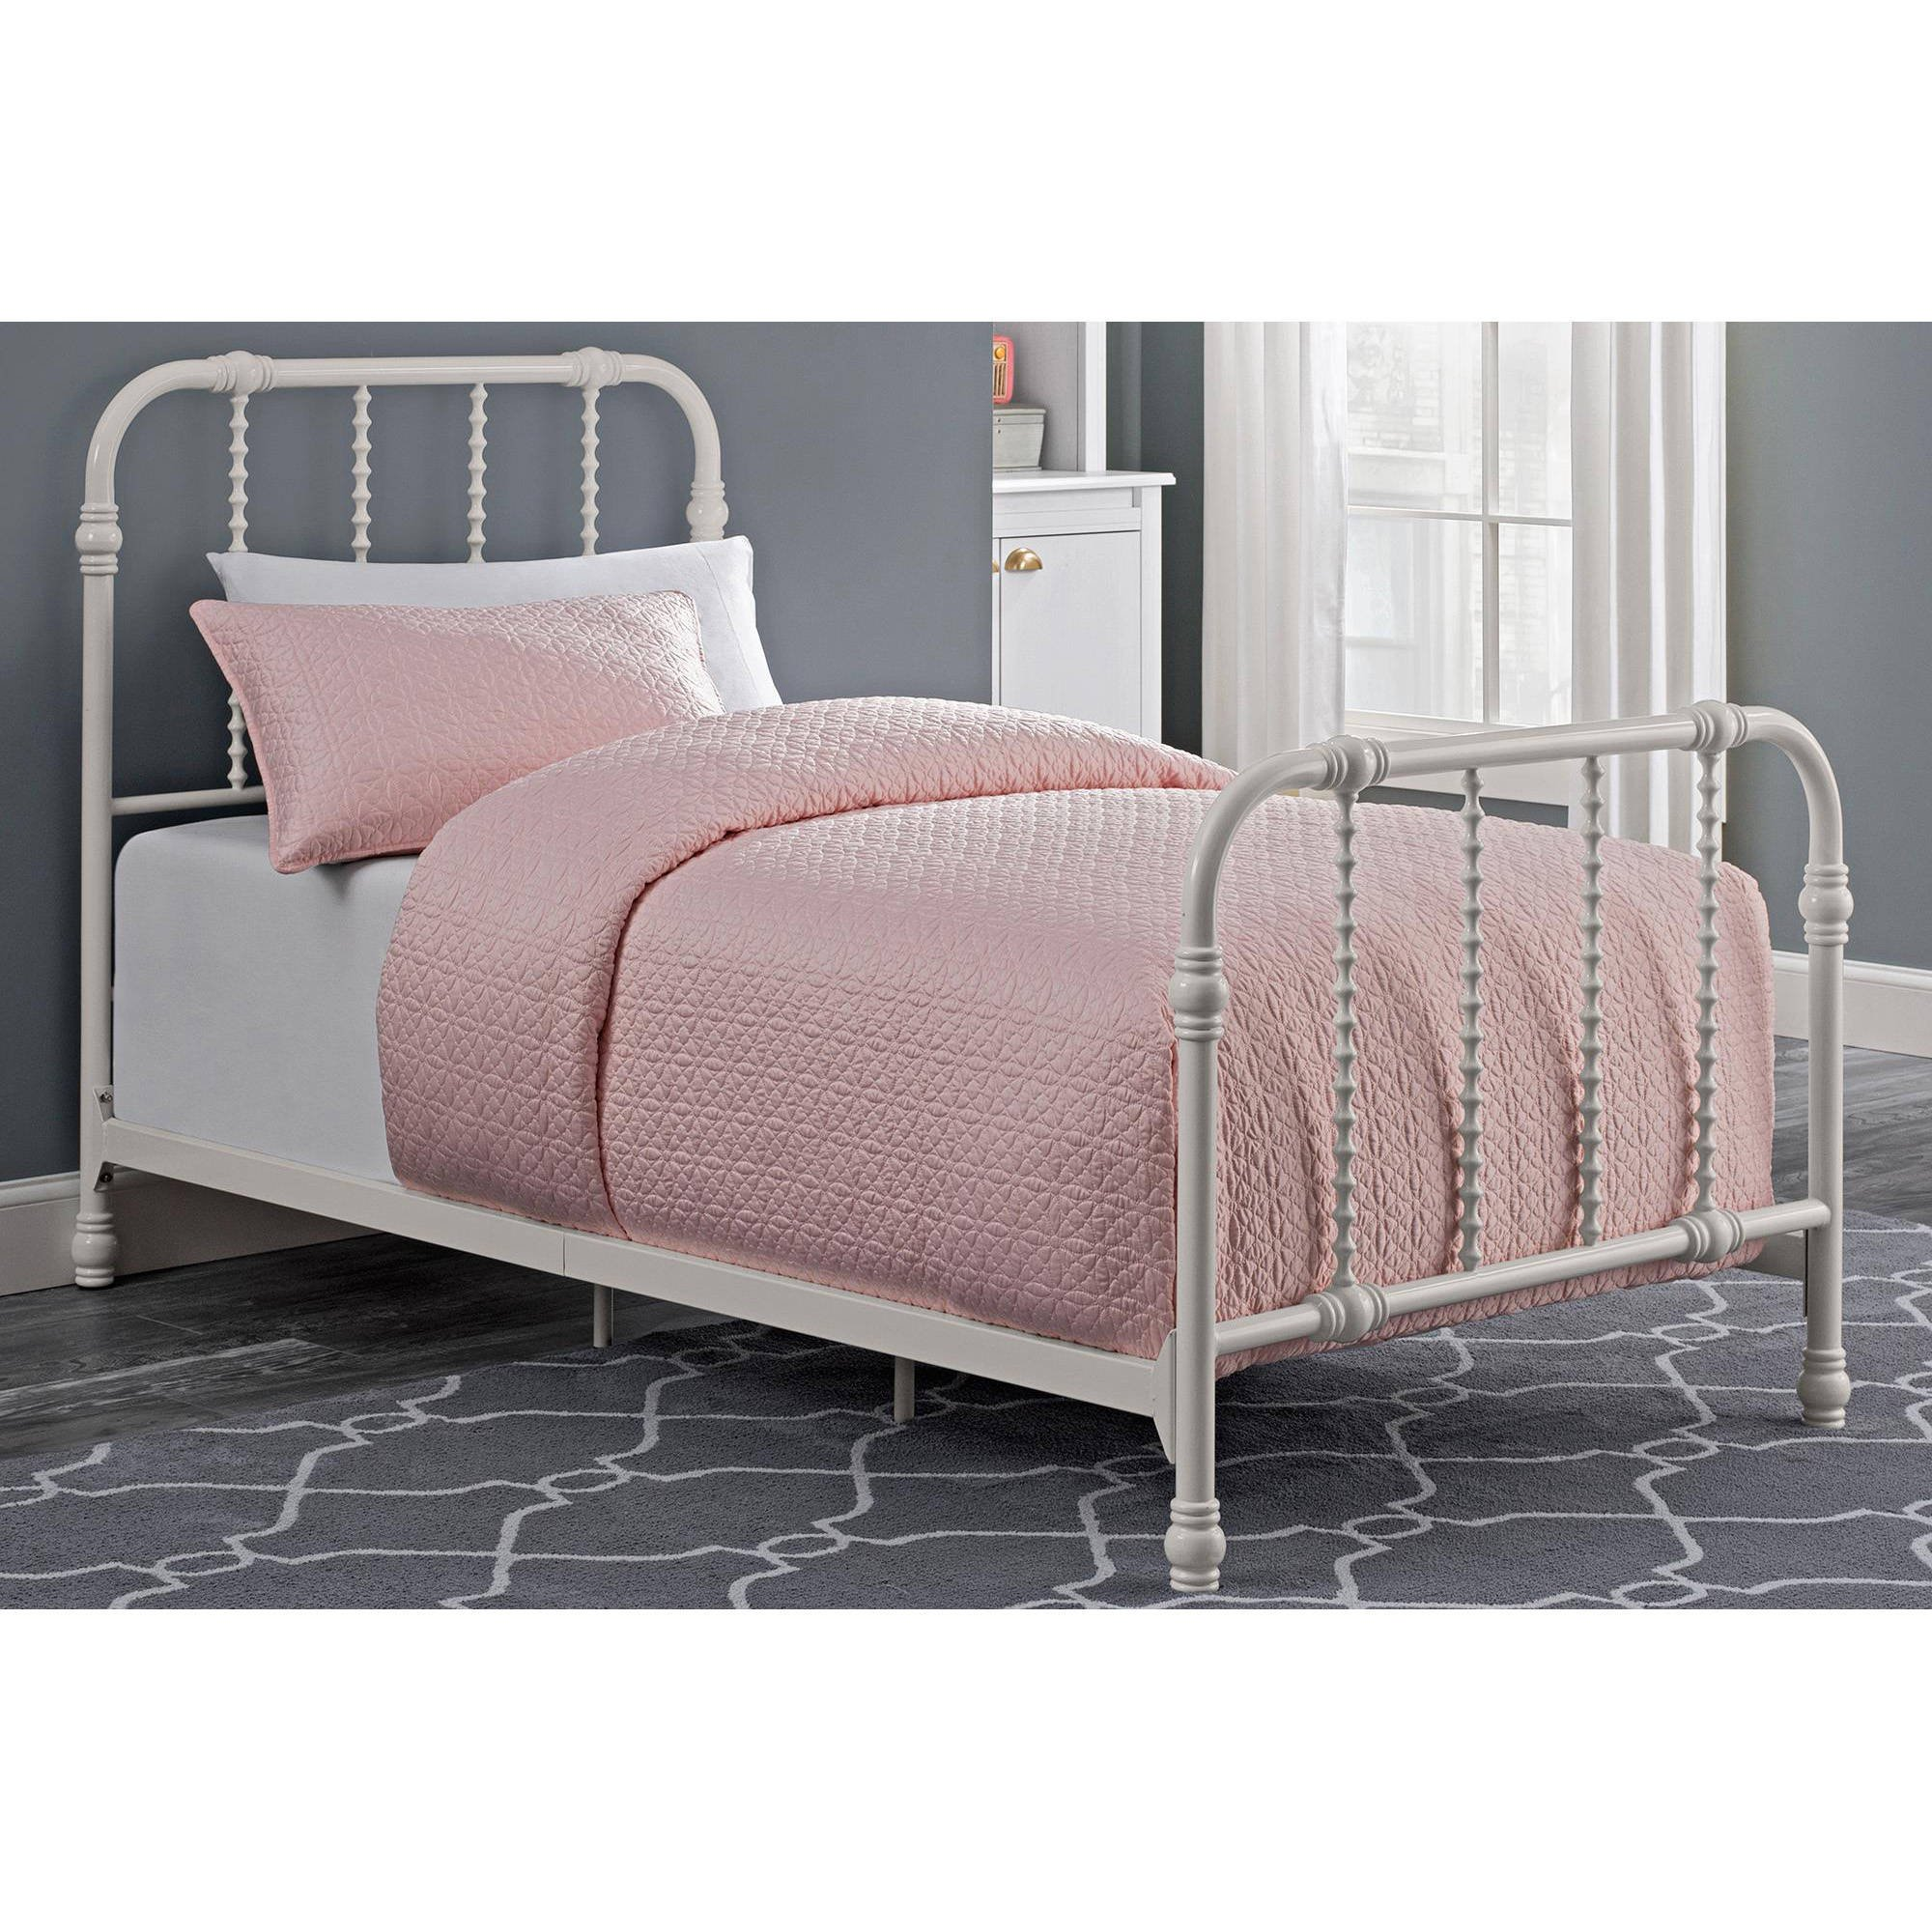 dorel home dhp jenny lind scroll twin metal bed white